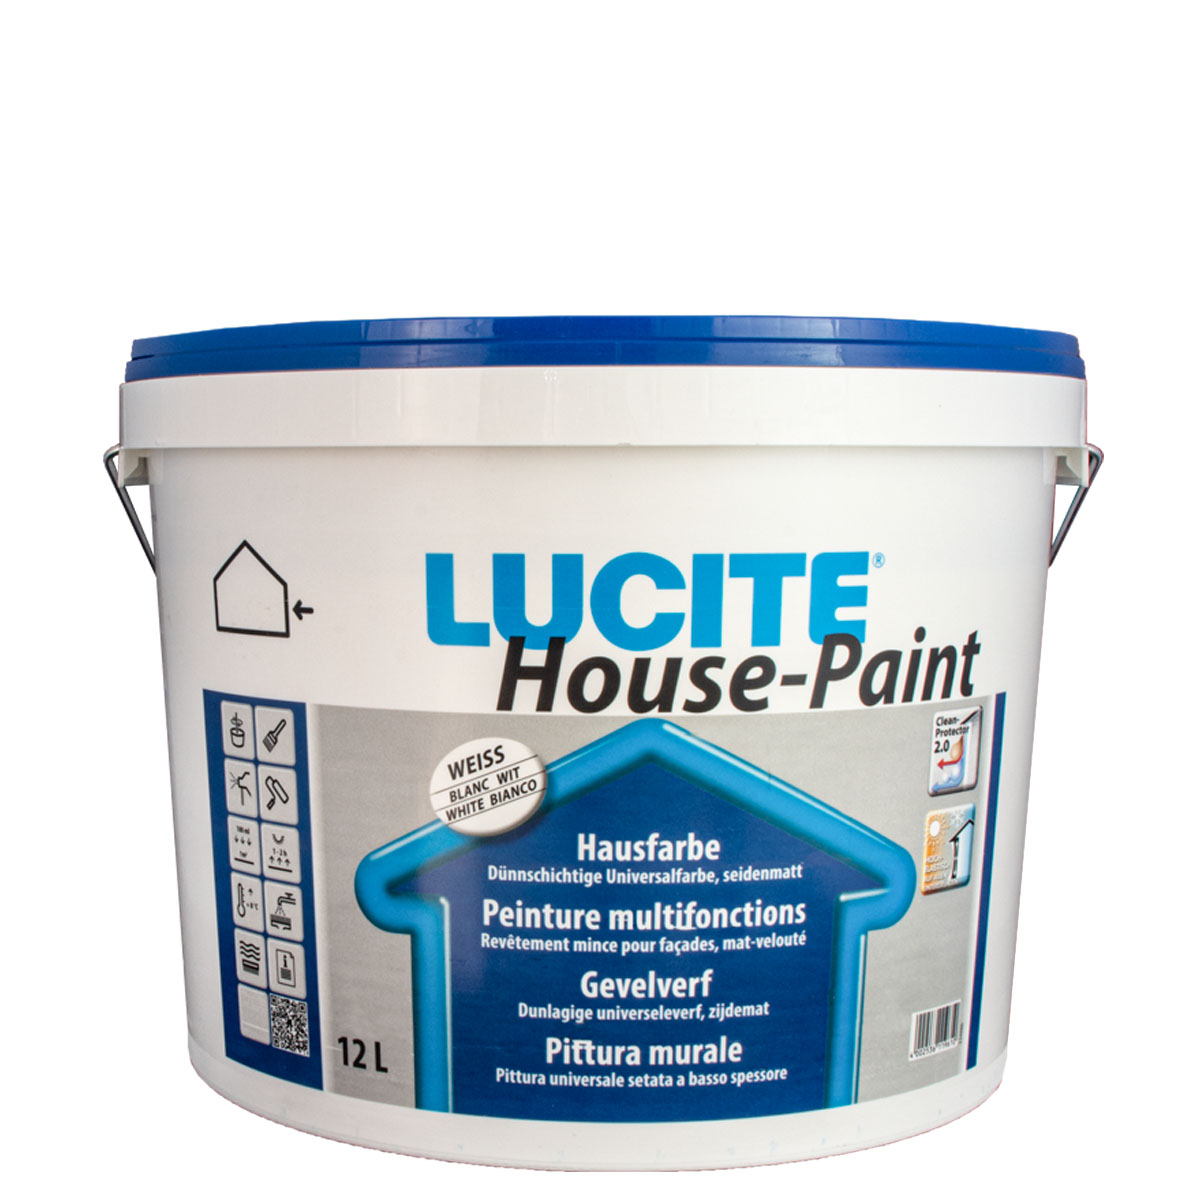 Lucite House Paint 12L MIX PG1 , Hausfarbe, Fassadenfarbe